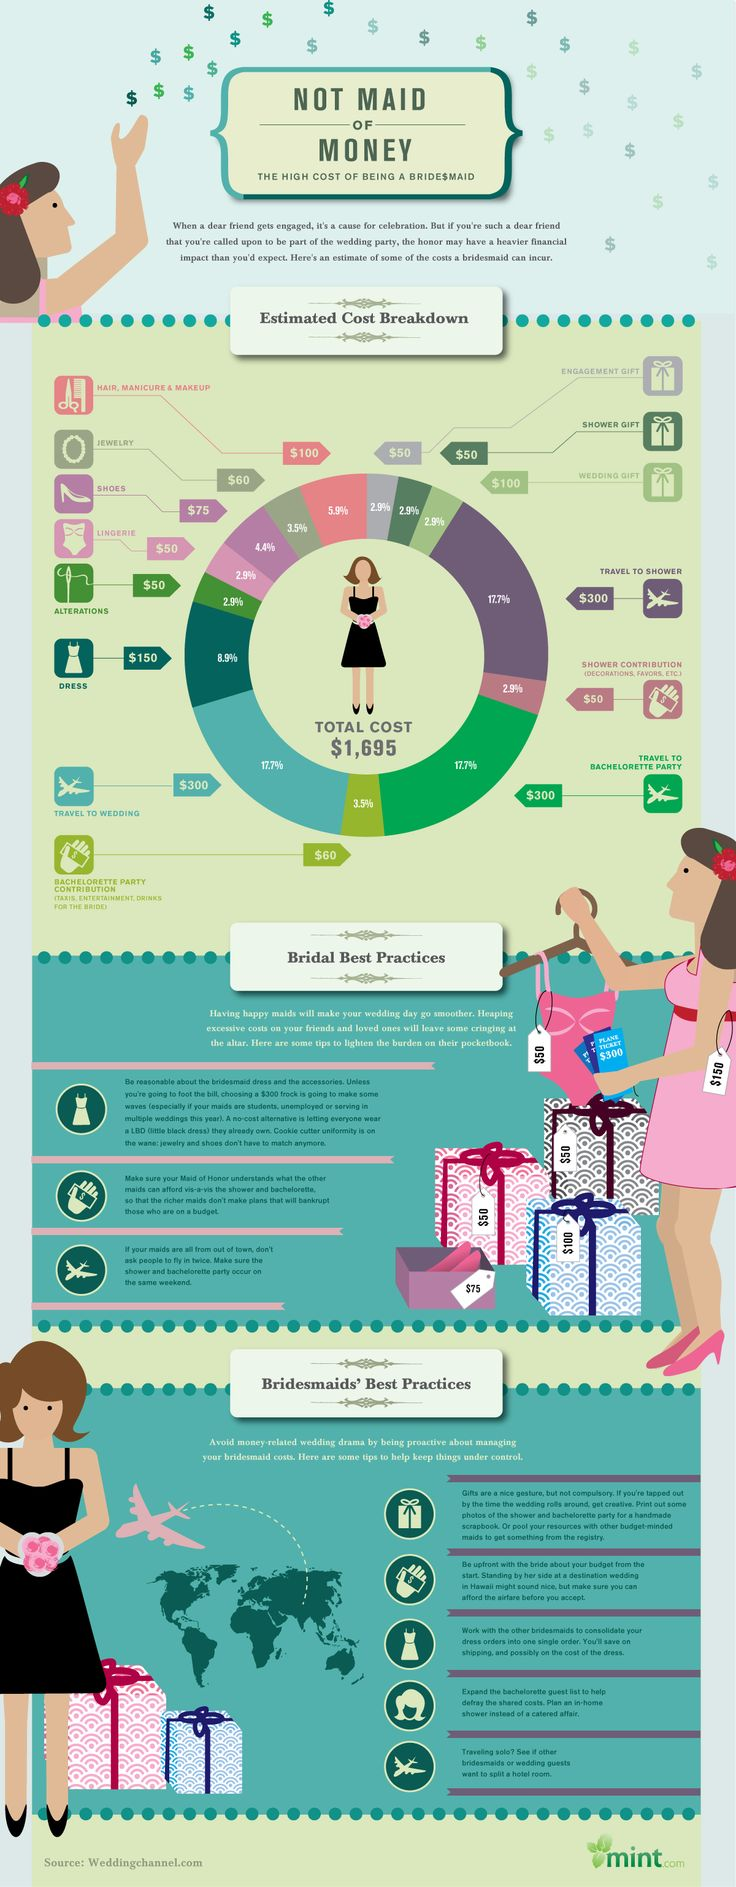 Not Maid Of Money The High Cost Being A Bridesmaid Infographic